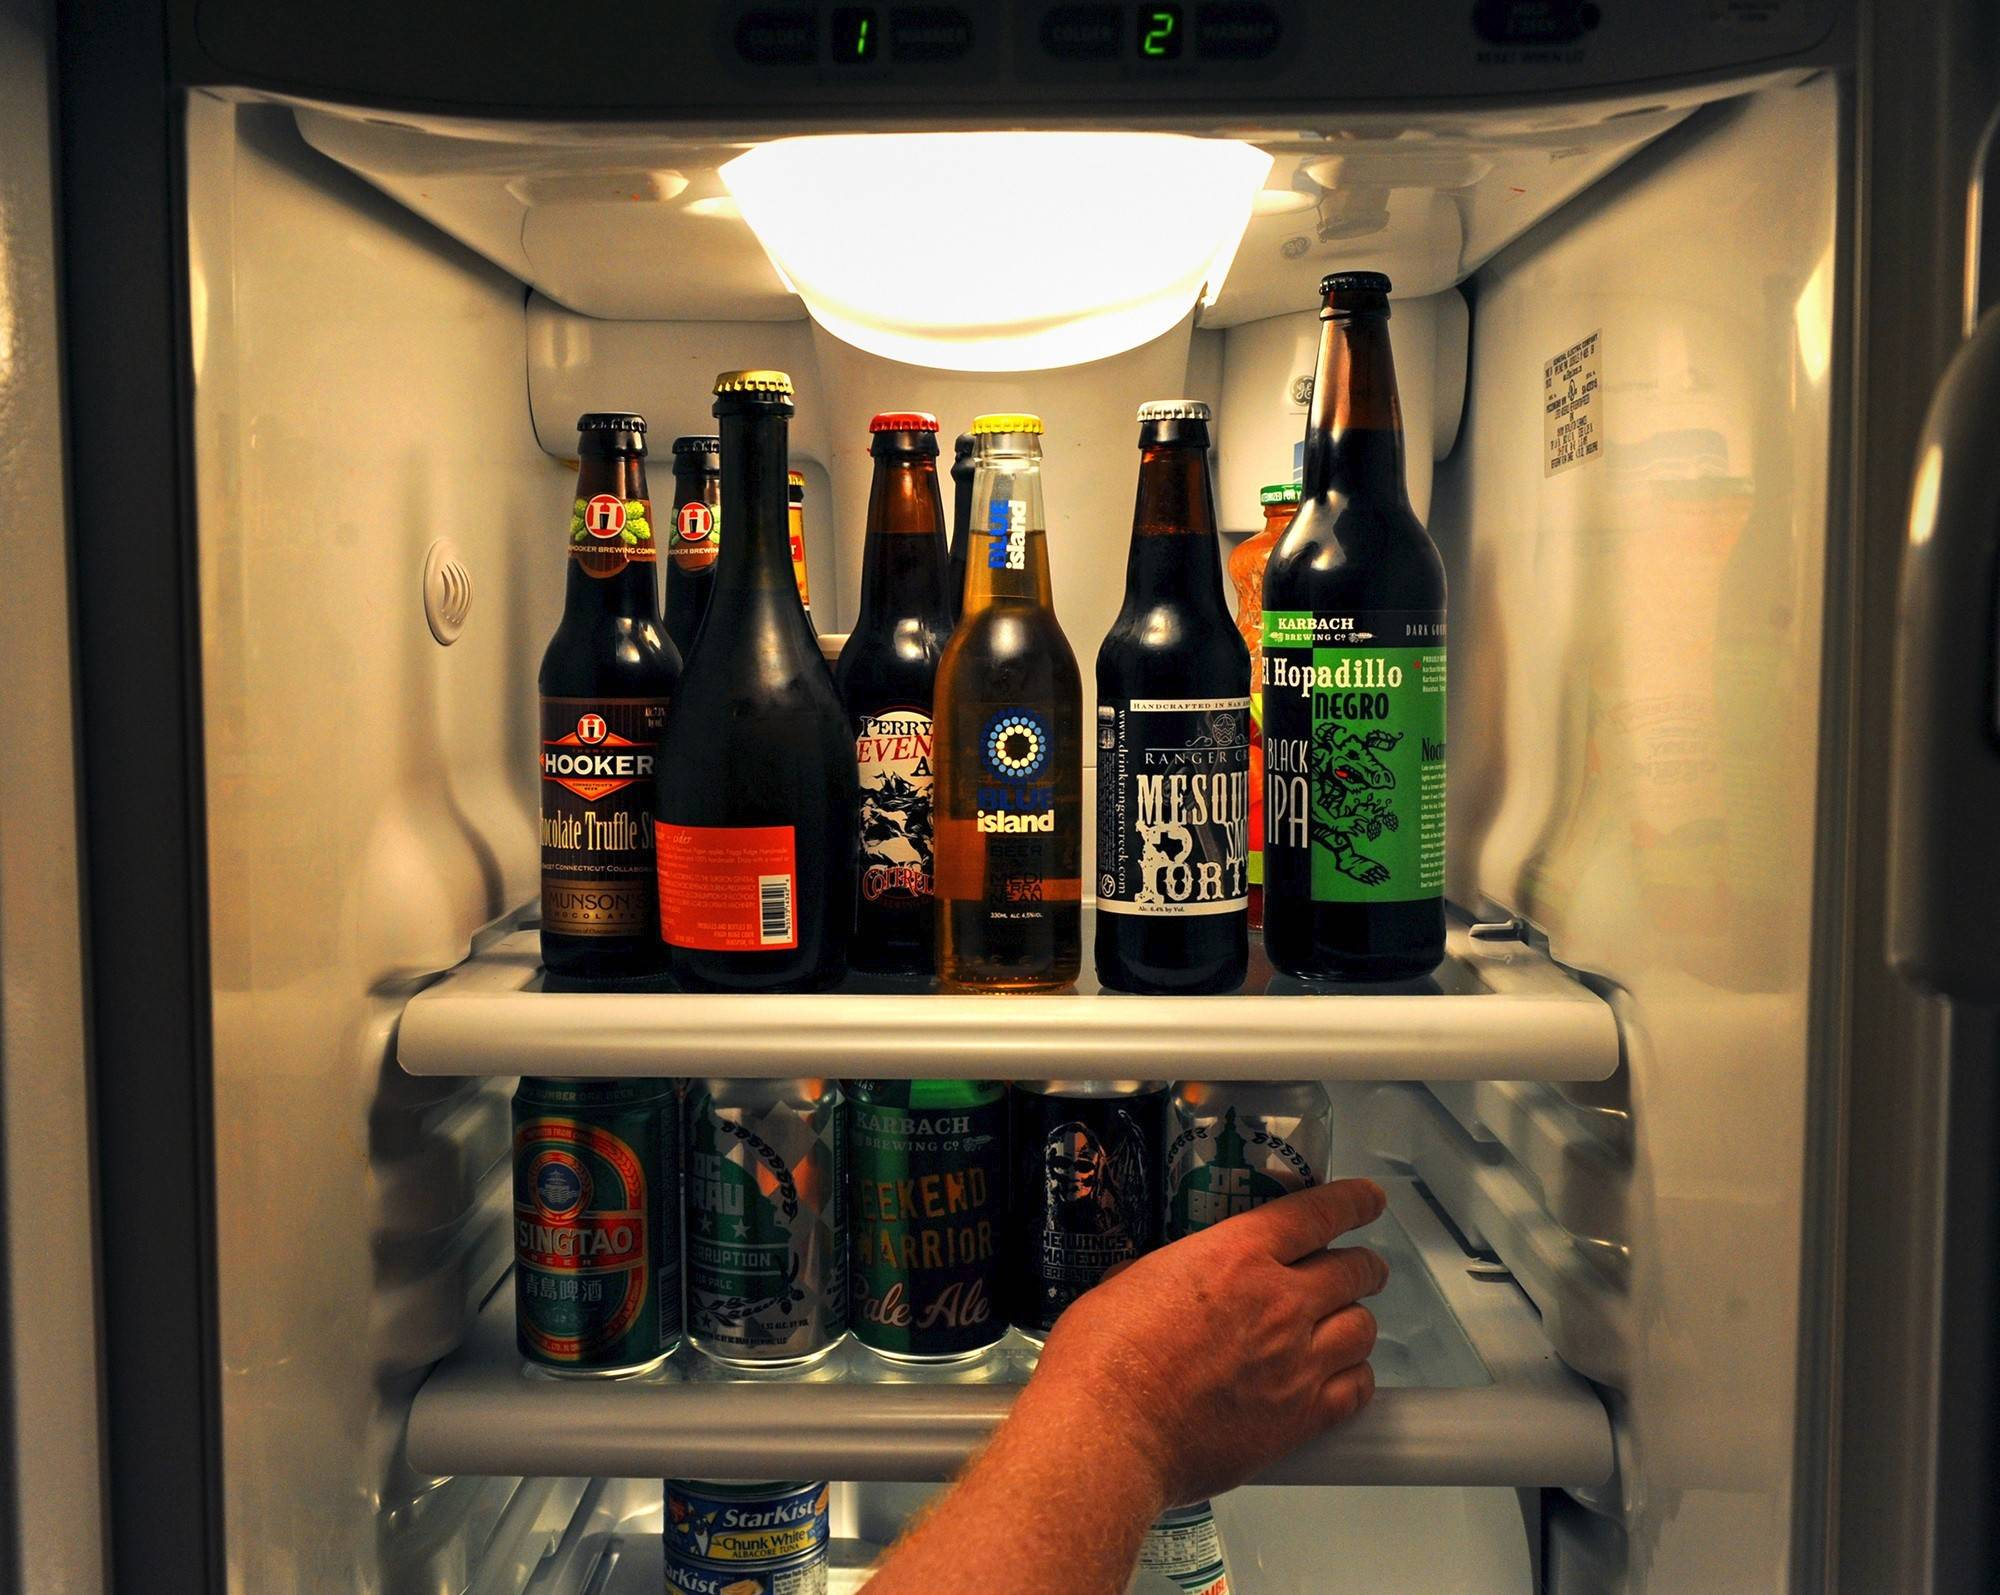 Gene Bonventre stores scores of beers in a refrigerator in his Washington home.